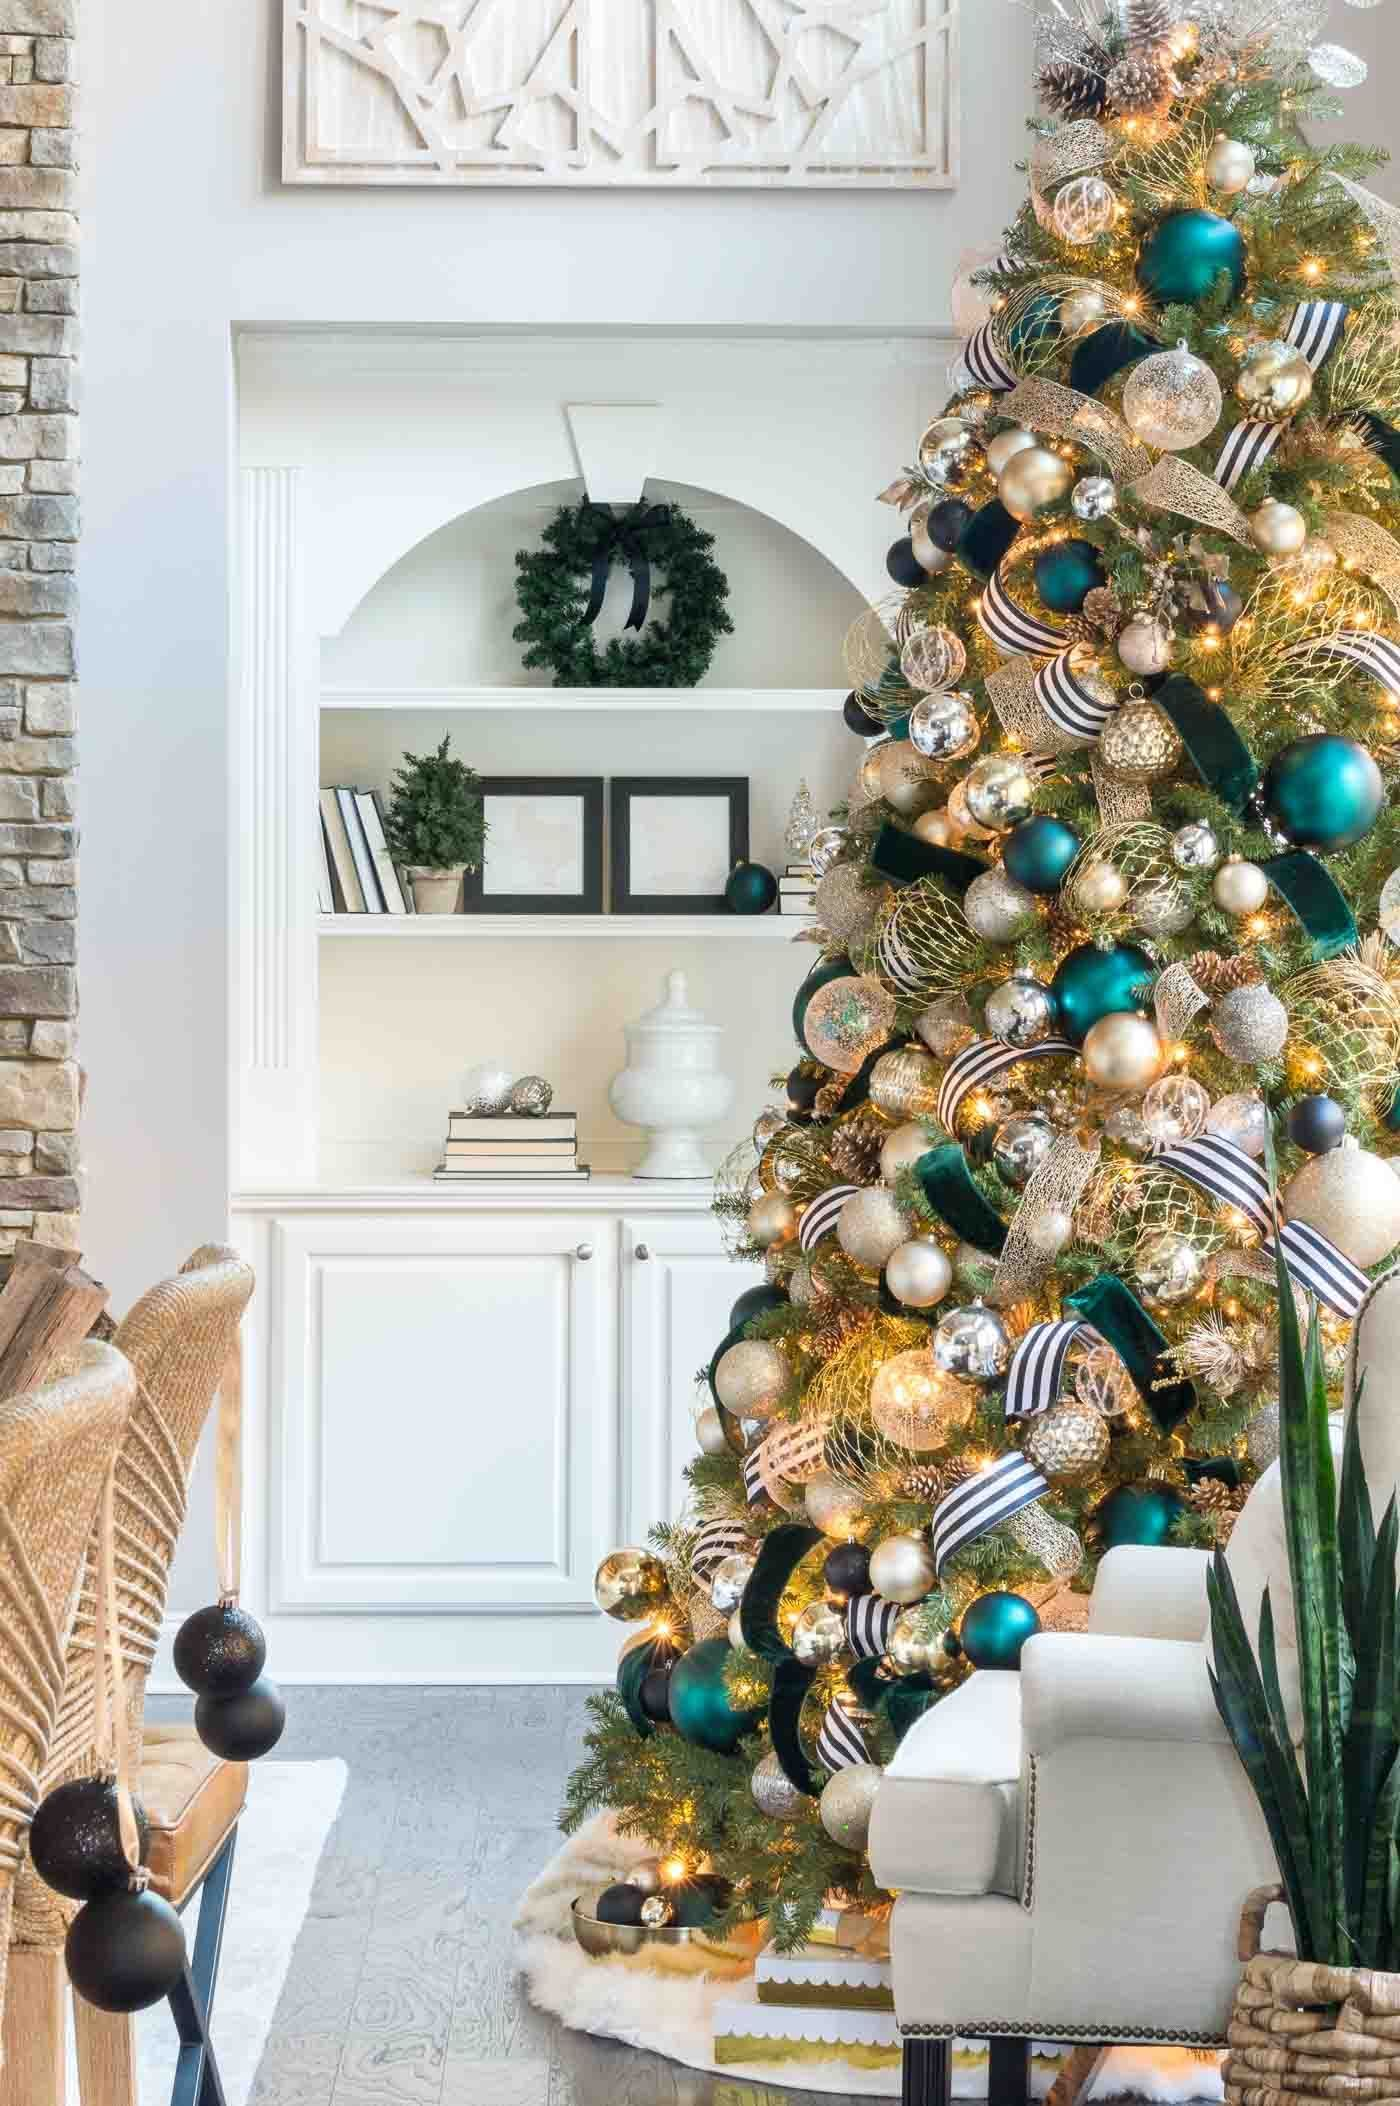 Christmas Home Tour Holiday Decorations And Unique Color Schemes In 2020 Christmas Tree Decorating Themes Black Christmas Decorations Elegant Christmas Trees